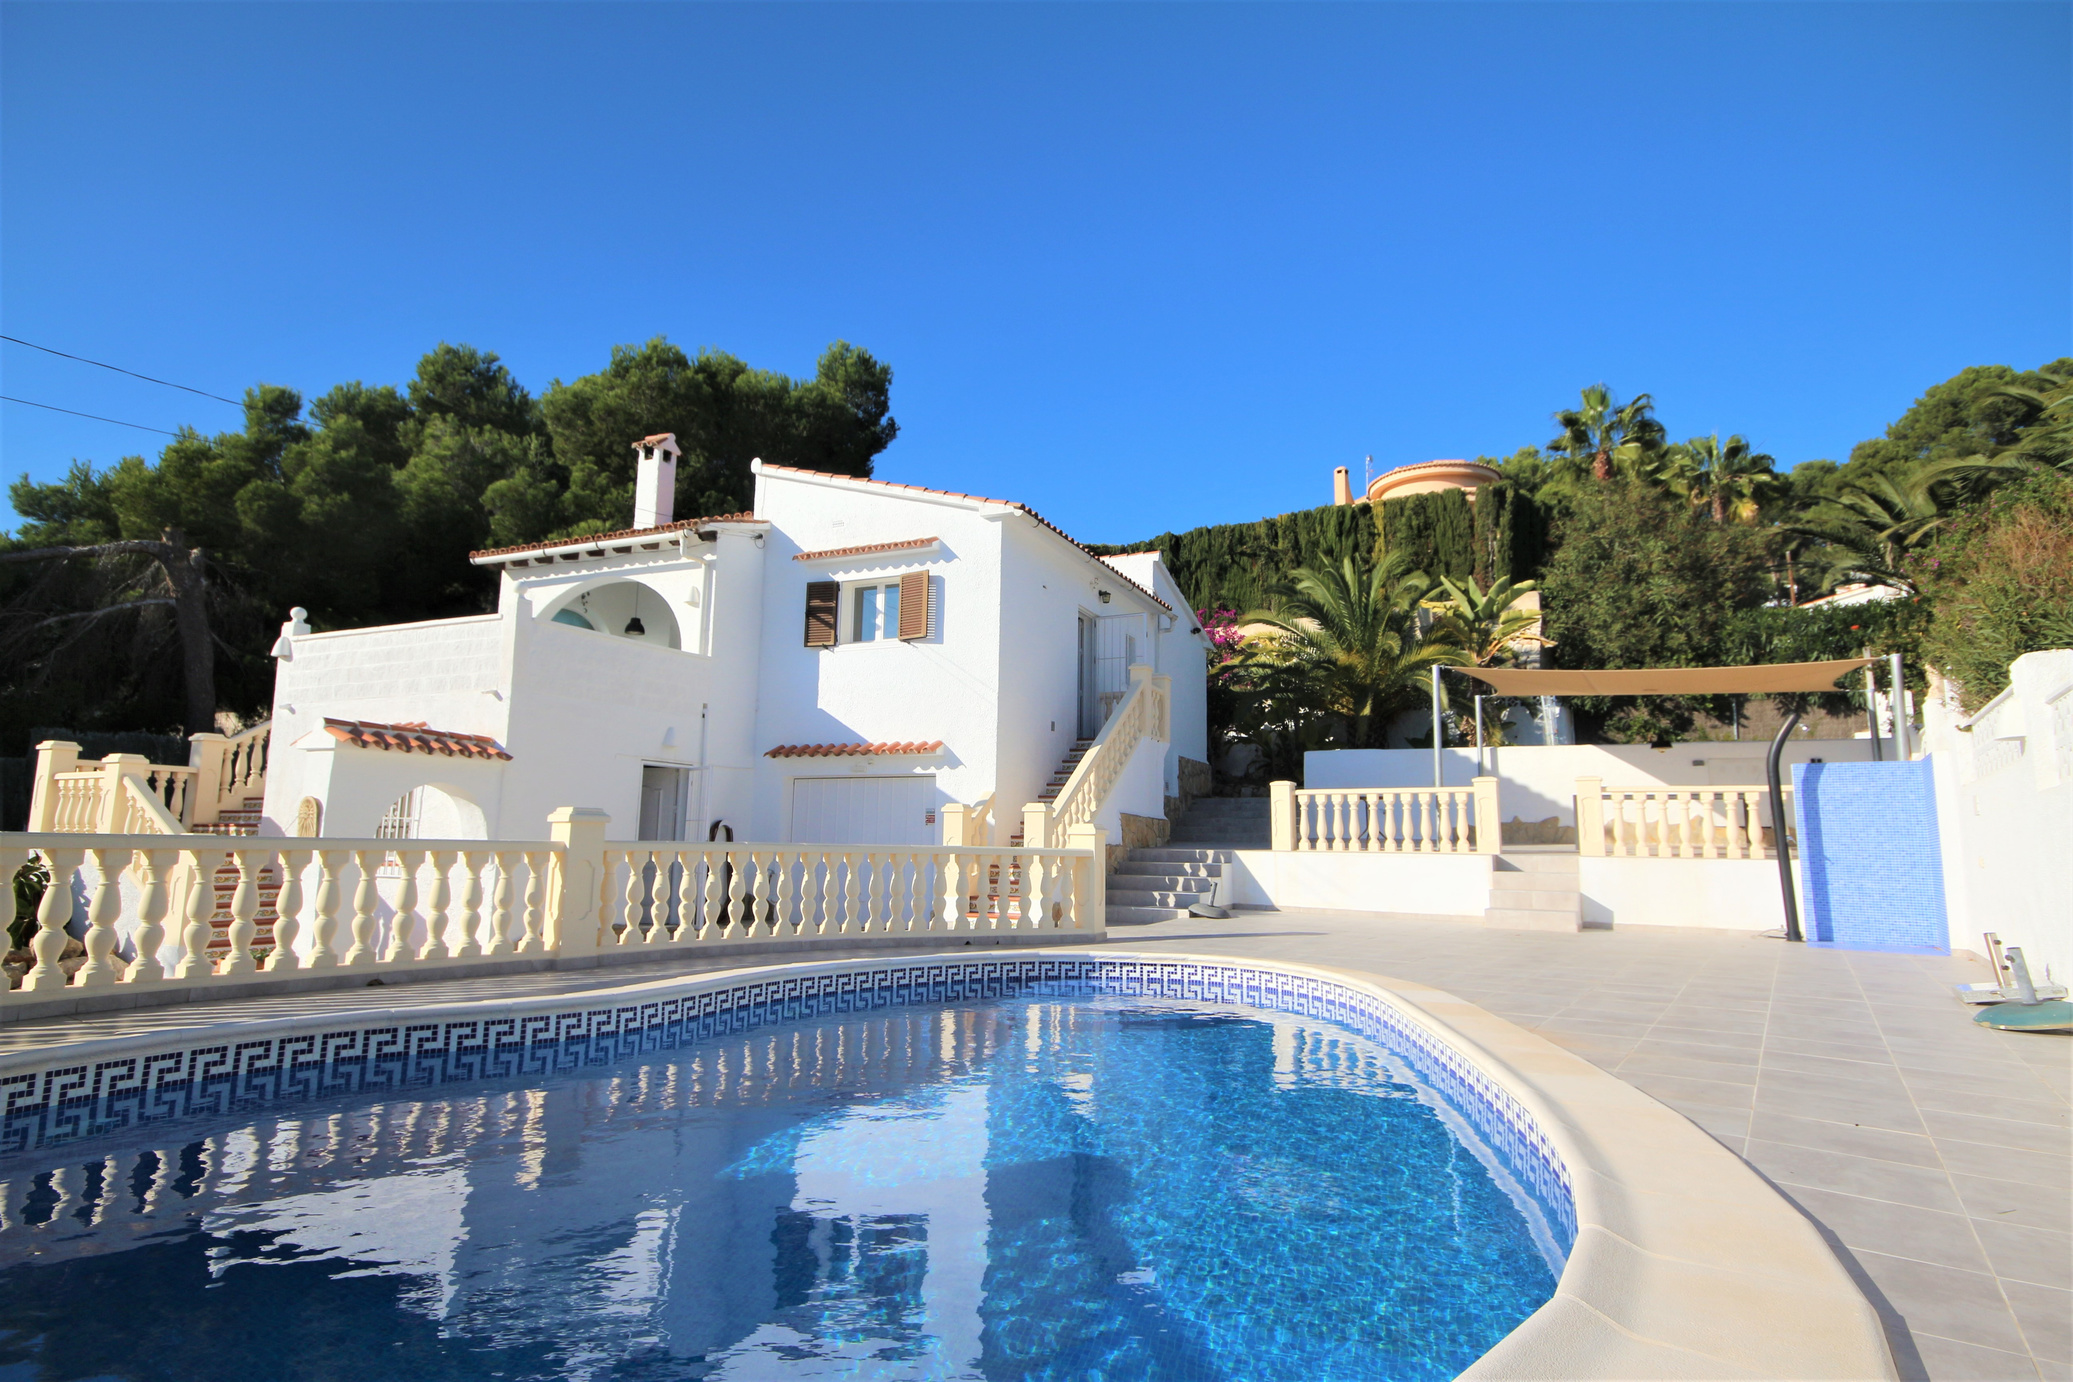 Three bedroom, two bathroom villa within walking distance to Moraira